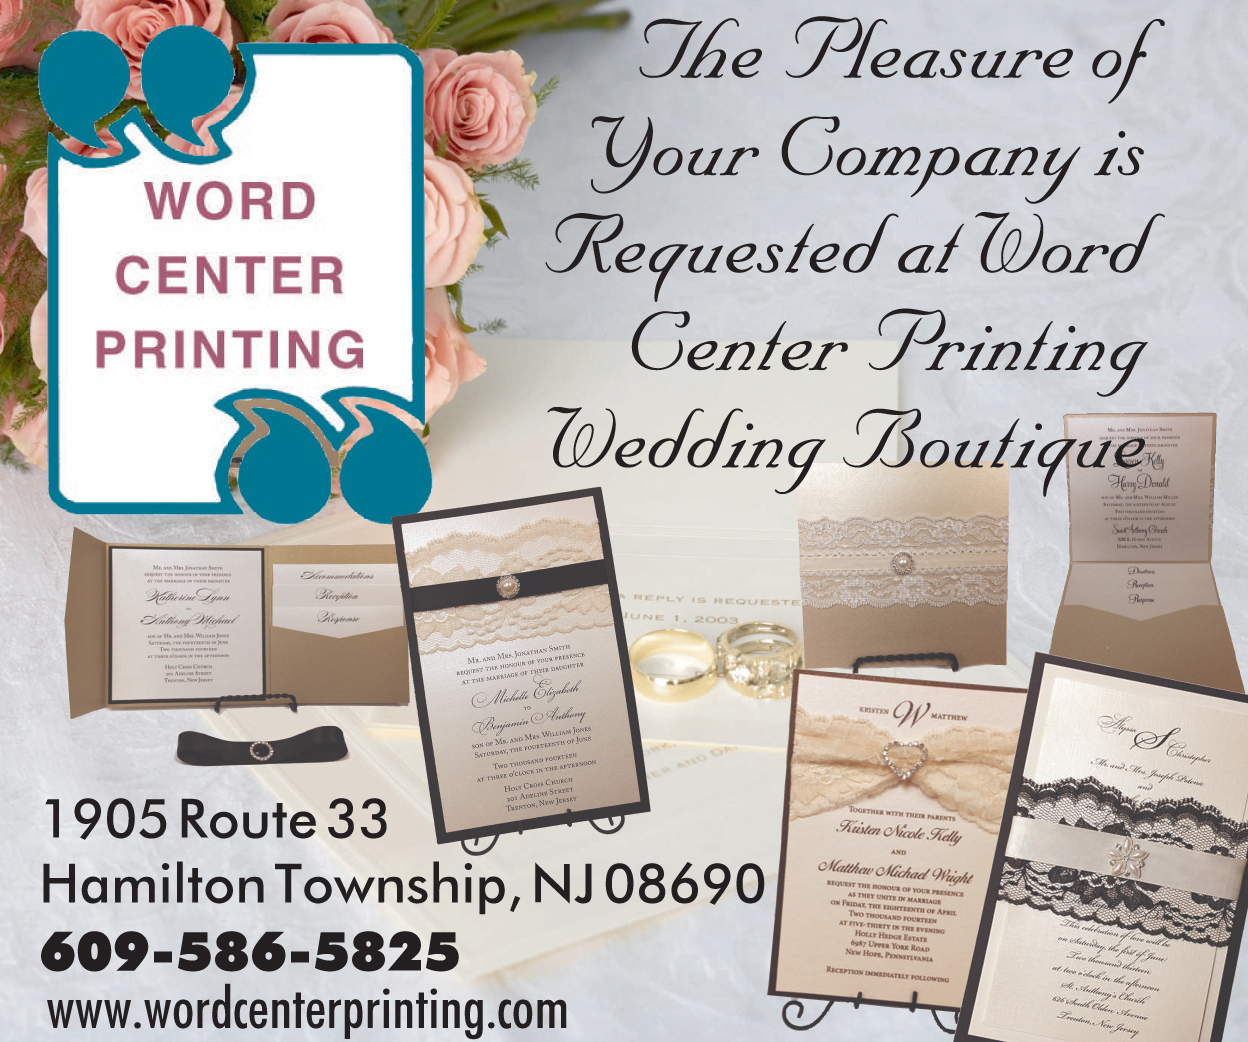 home printing copies invitations resume services